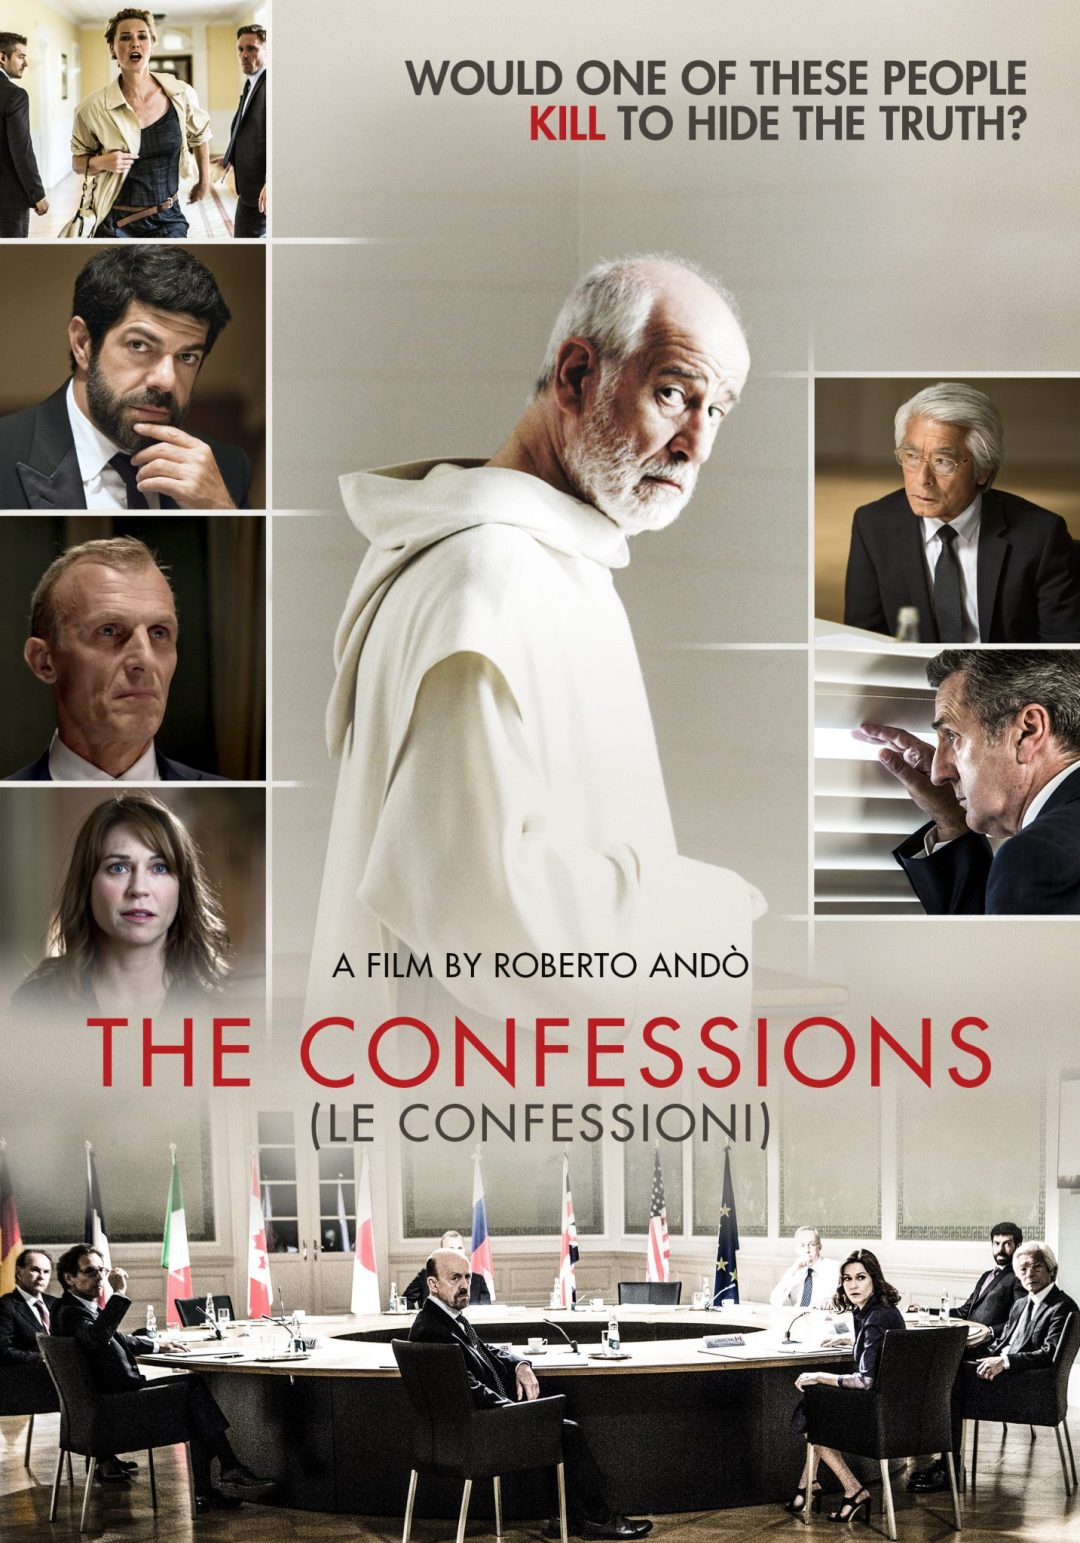 'The Confessions' in Theaters on July 7th